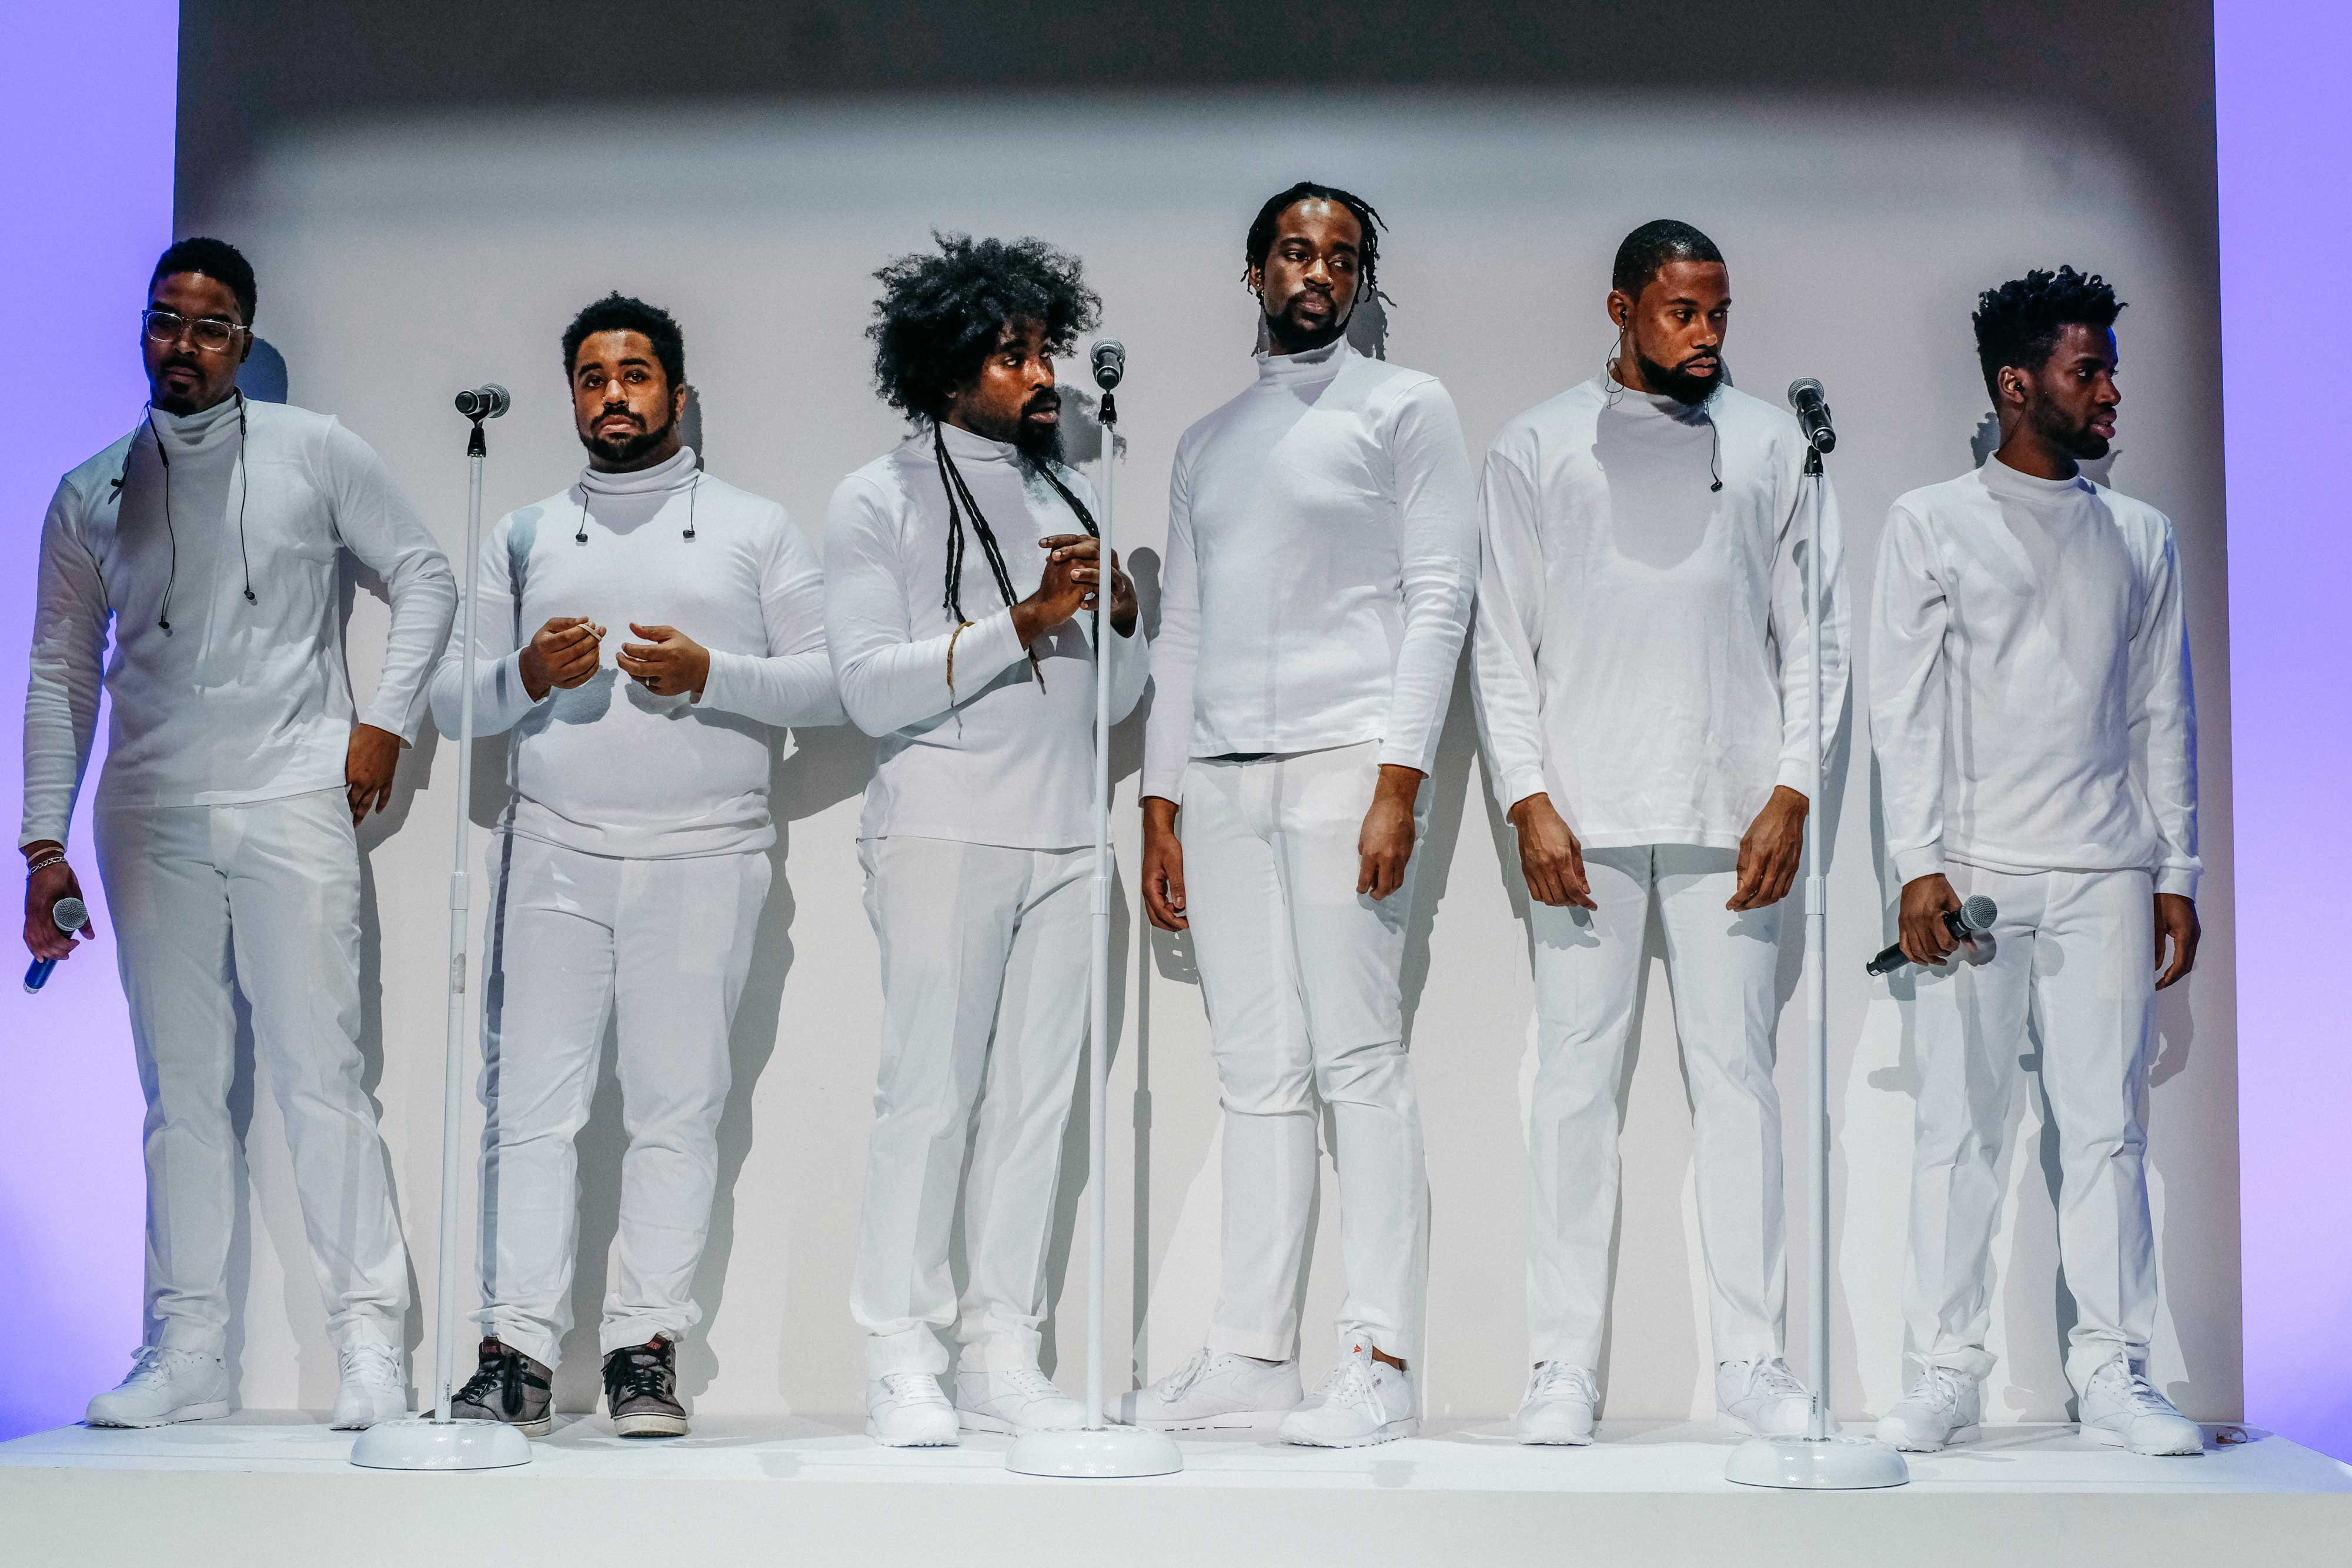 competitive price dbce9 b4ced A full choir rehearses for their performance at the Pyer Moss fashion show  at New York Fashion week, New York, NY on February 10, 2018.